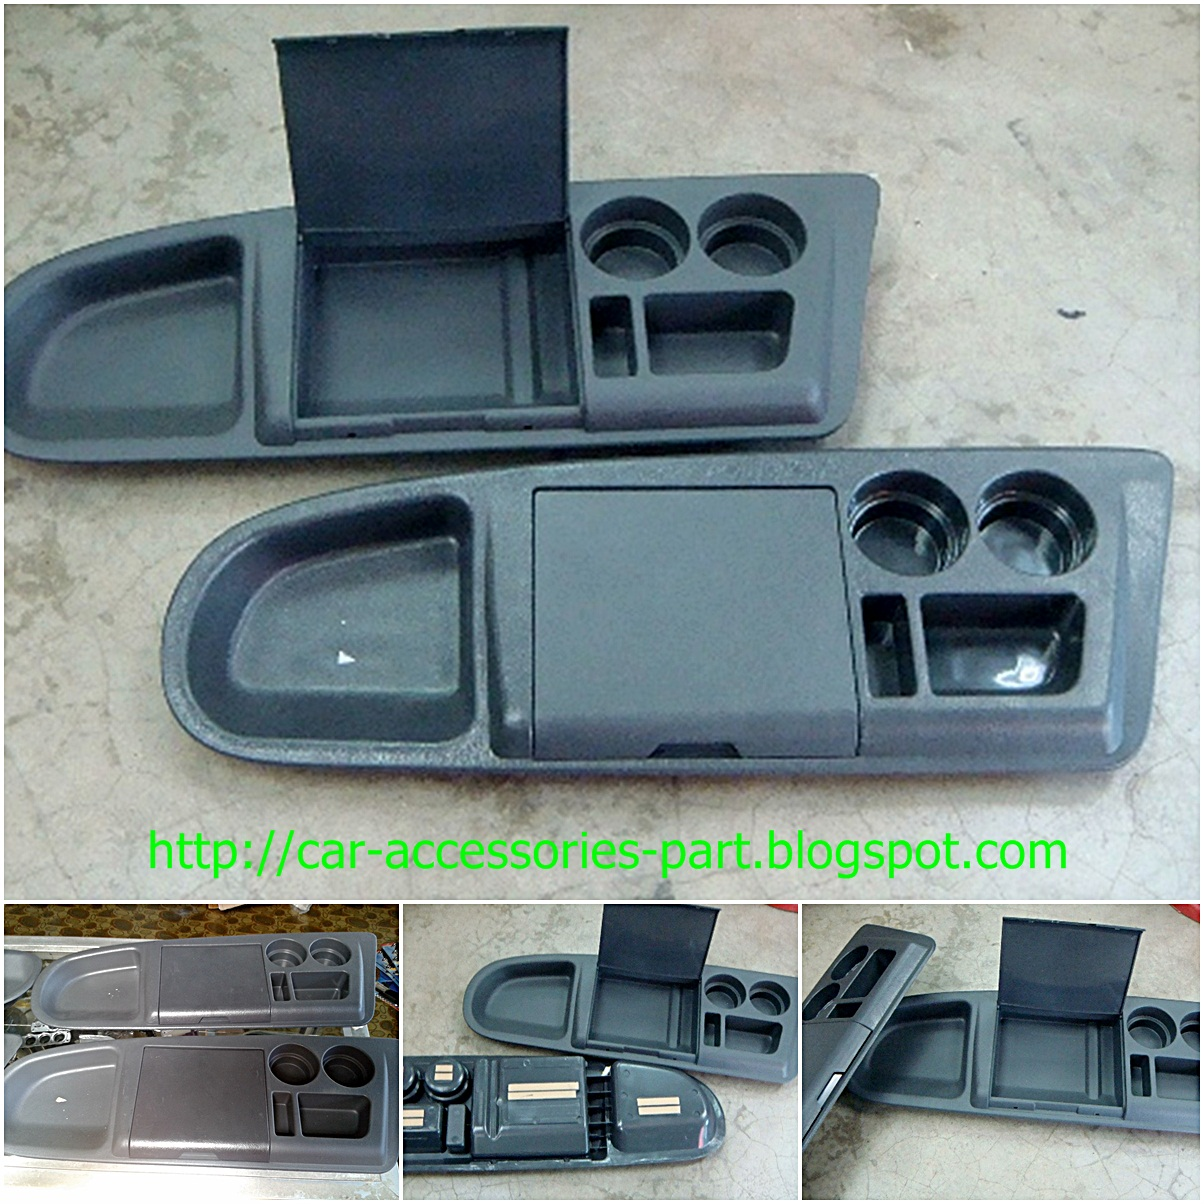 car accessories: TRAY KANCIL DASHBOARD RM50